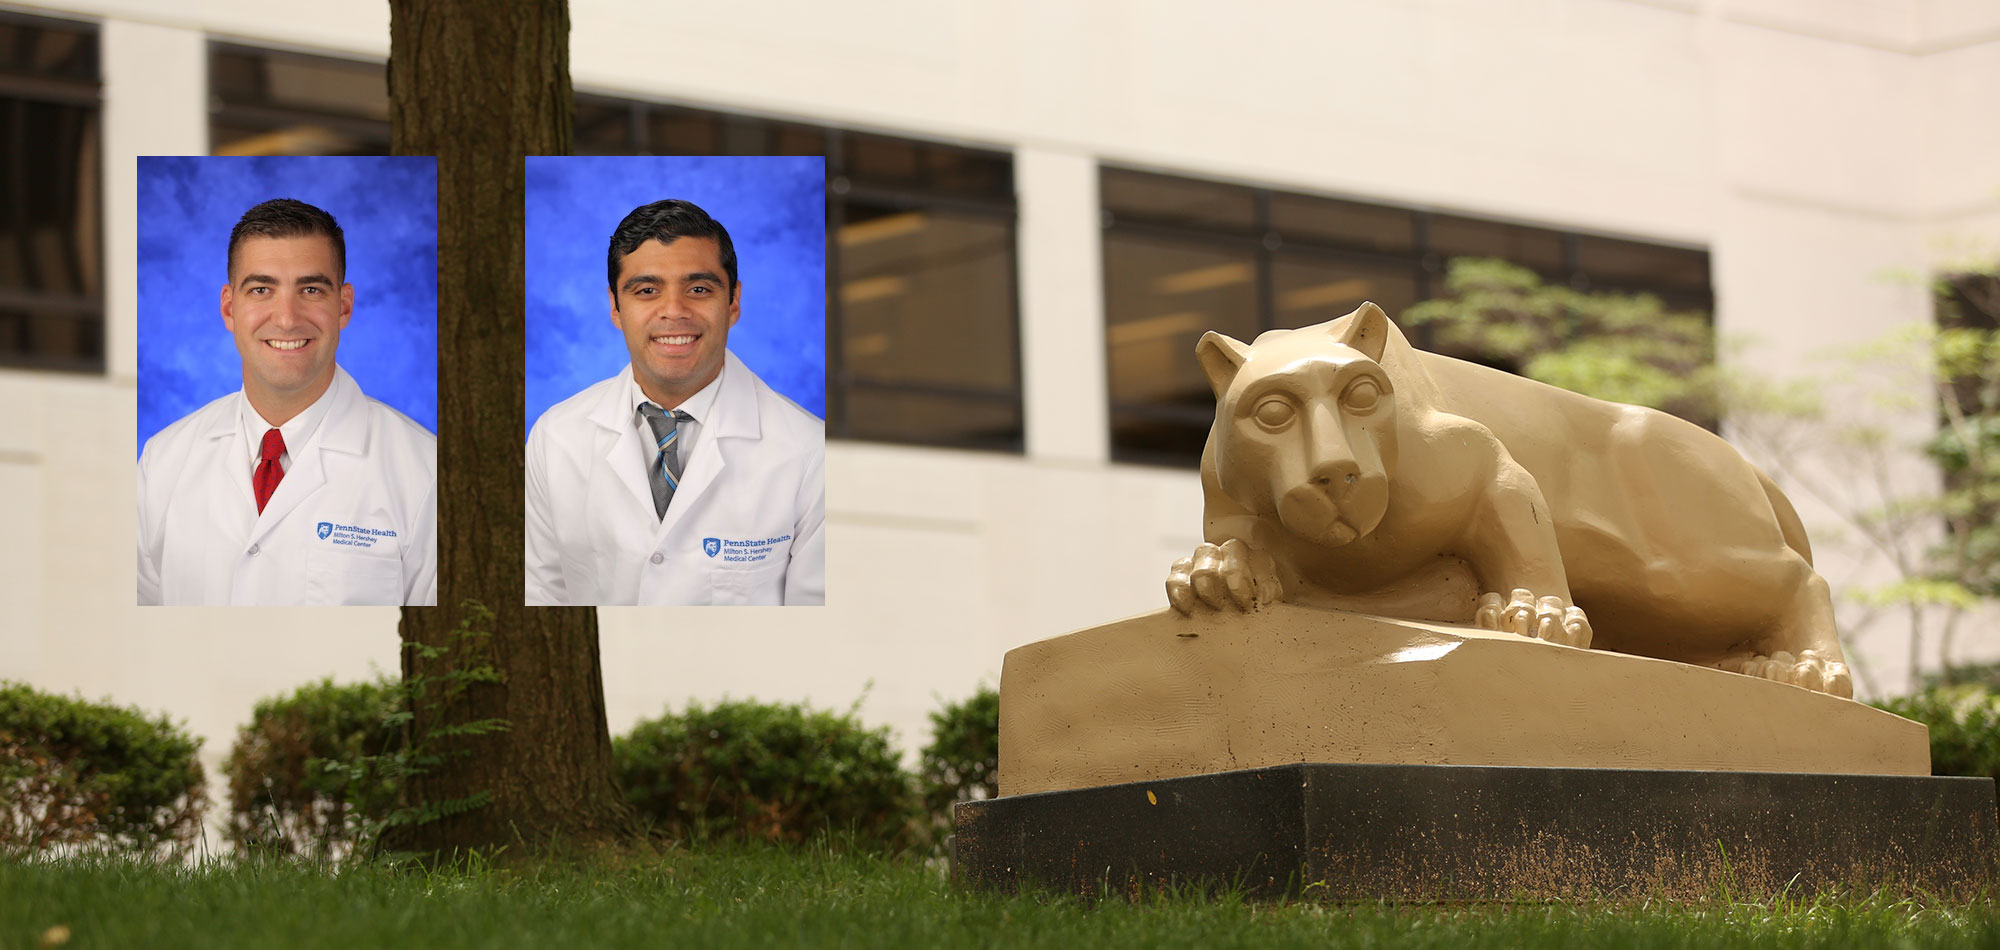 Two residents joined the Penn State Plastic Surgery Residency in 2017. At left is Jeffrey Fornadley, MD, a graduate of Penn State College of Medicine. At right is Sameer Massand, MD, a graduate of Drexel University College of Medicine. Photos of the two residents, each wearing white medical coats and standing in front of a blue photo background, are seen superimposed on a photo of the Penn State Nittany Lion statue in the College of Medicine courtyard. A building and tree are visible in the background.